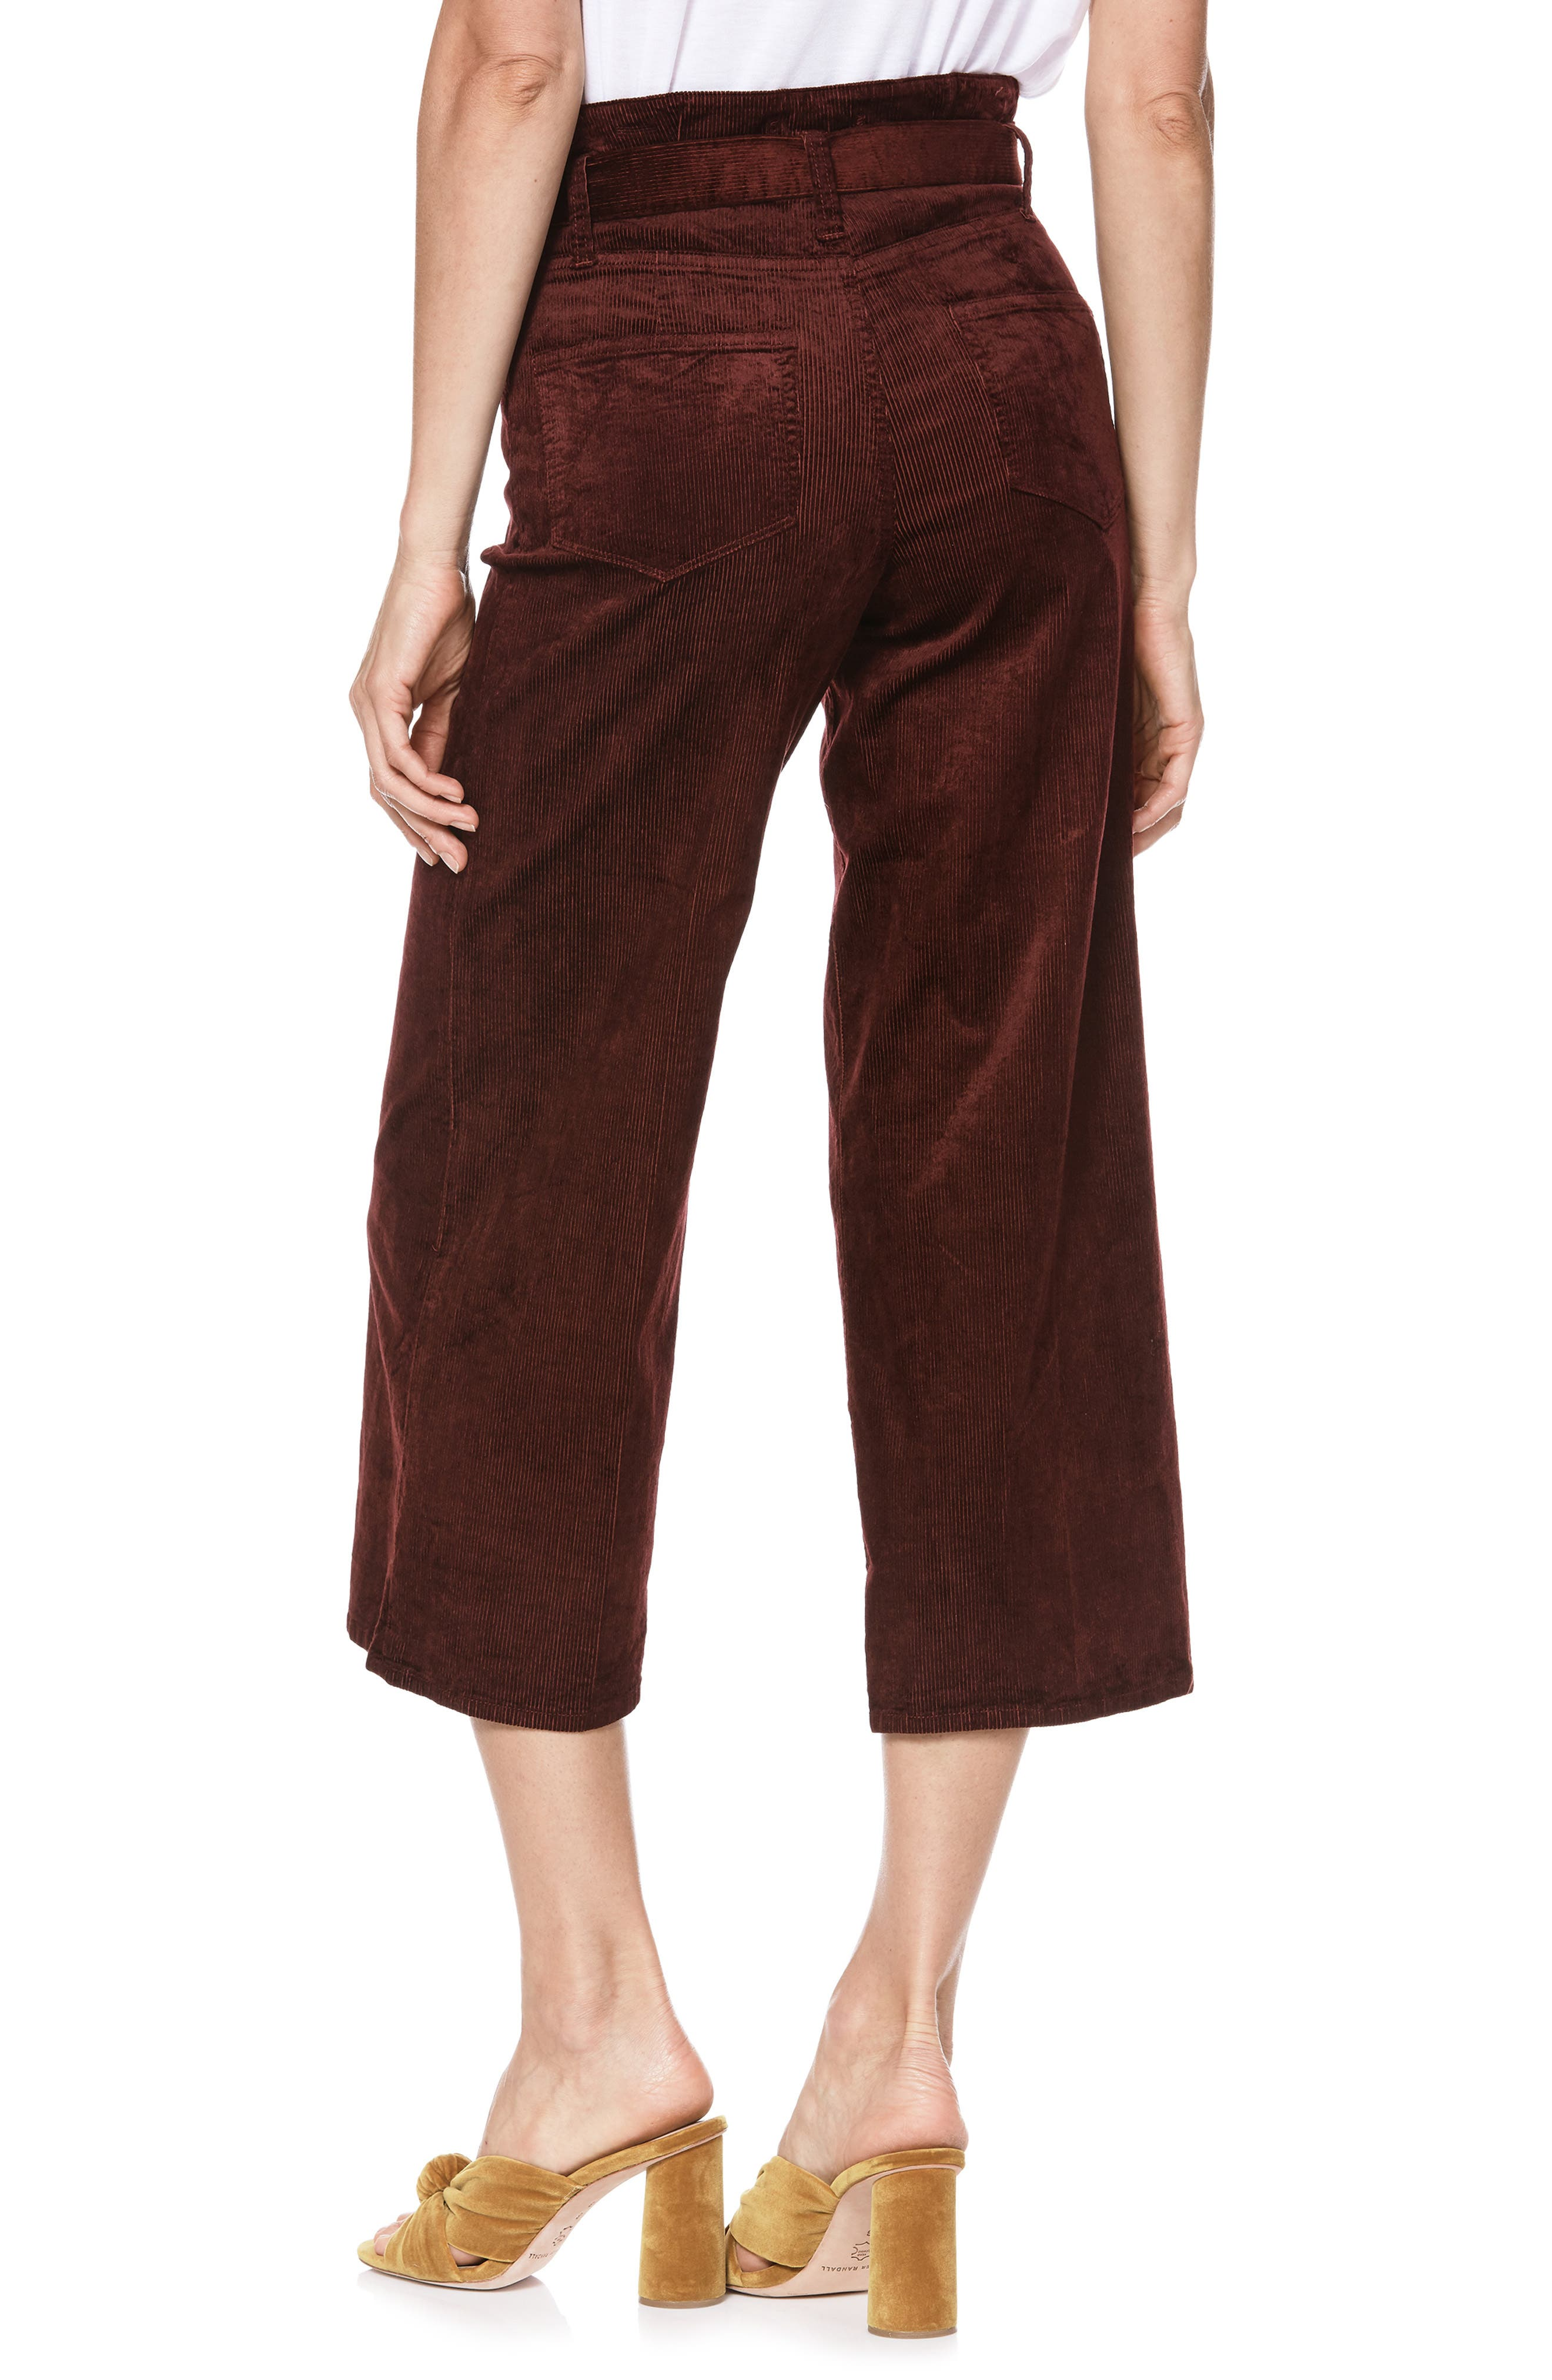 Sutton Paperbag Crop Wide Leg Corduroy Pants,                             Alternate thumbnail 2, color,                             DARK CURRANT